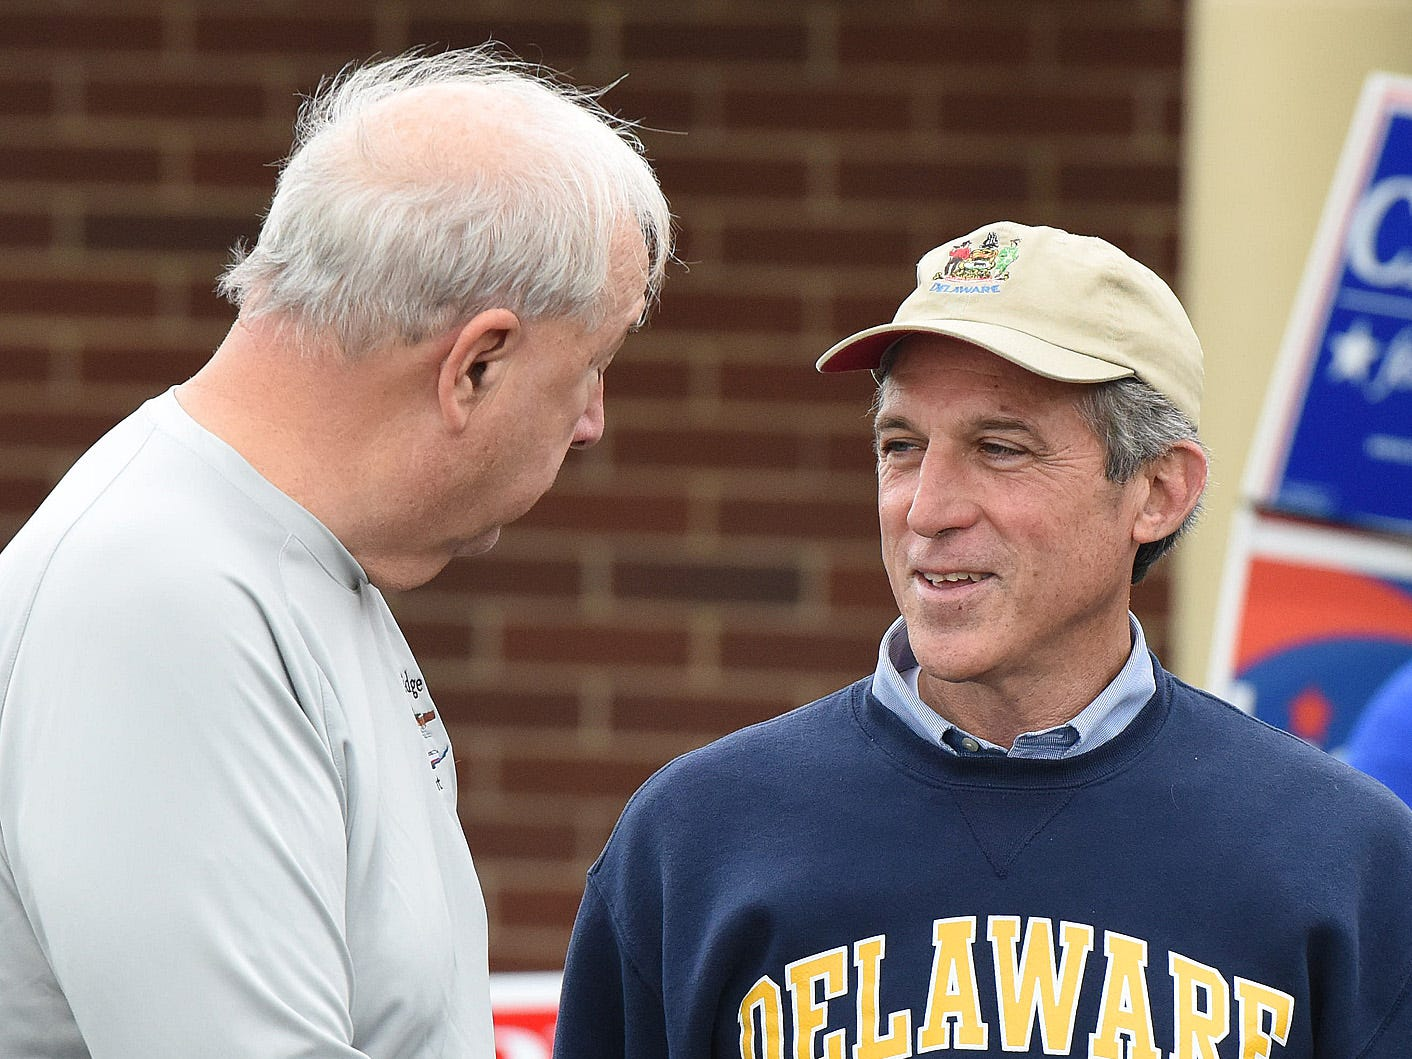 Gov. John Carney greets voters at Cape Henlopen High School near Lewes as turnout in eastern Sussex County has been steady at polling places as candidates still seek supporters for their support.